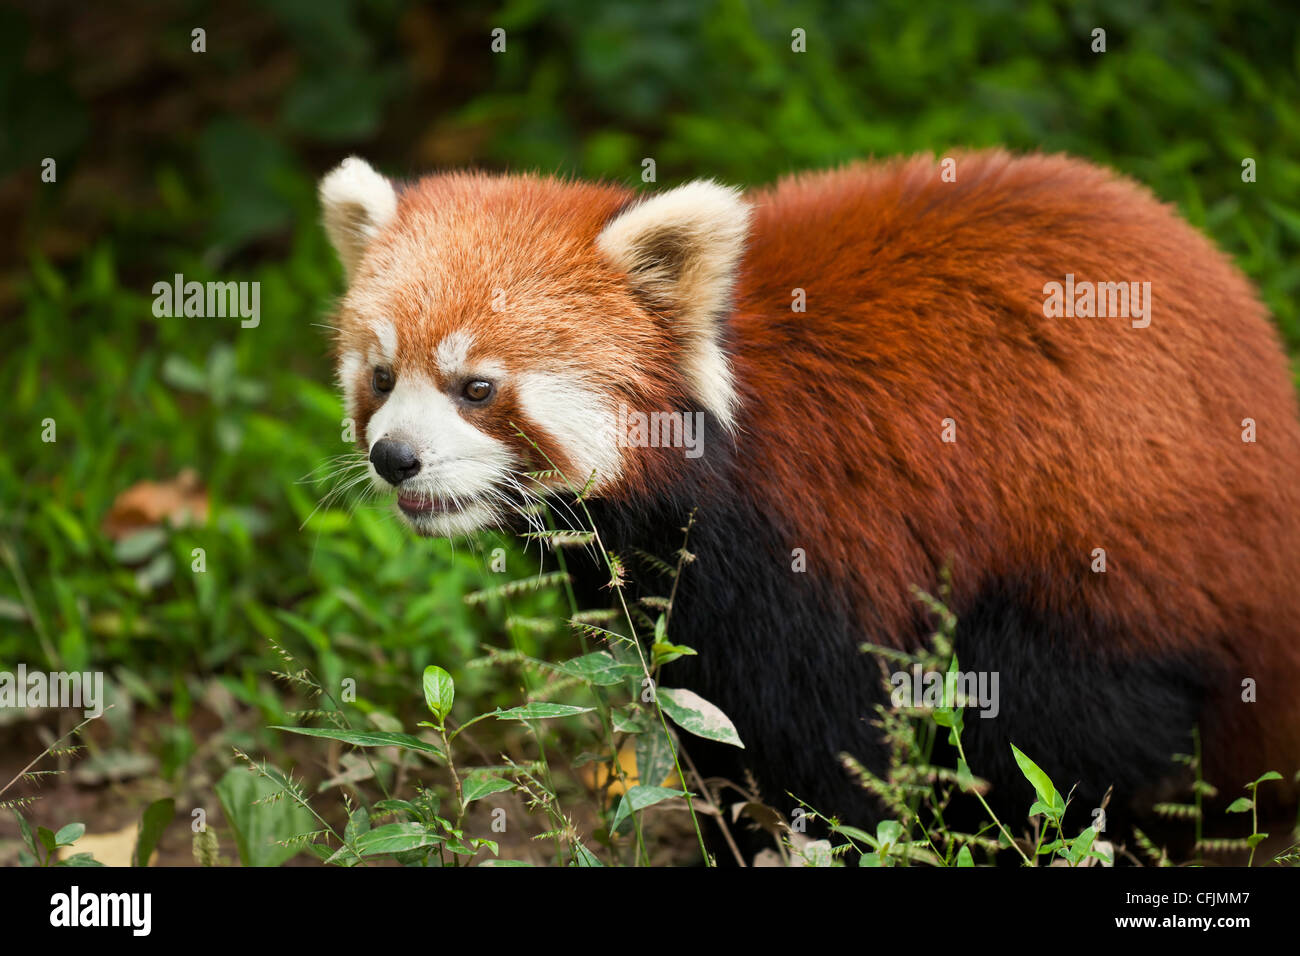 Red Panda (Ailurus fulgens), Panda Breeding and Research Centre, Chengdu, Sichuan province, China, Asia - Stock Image